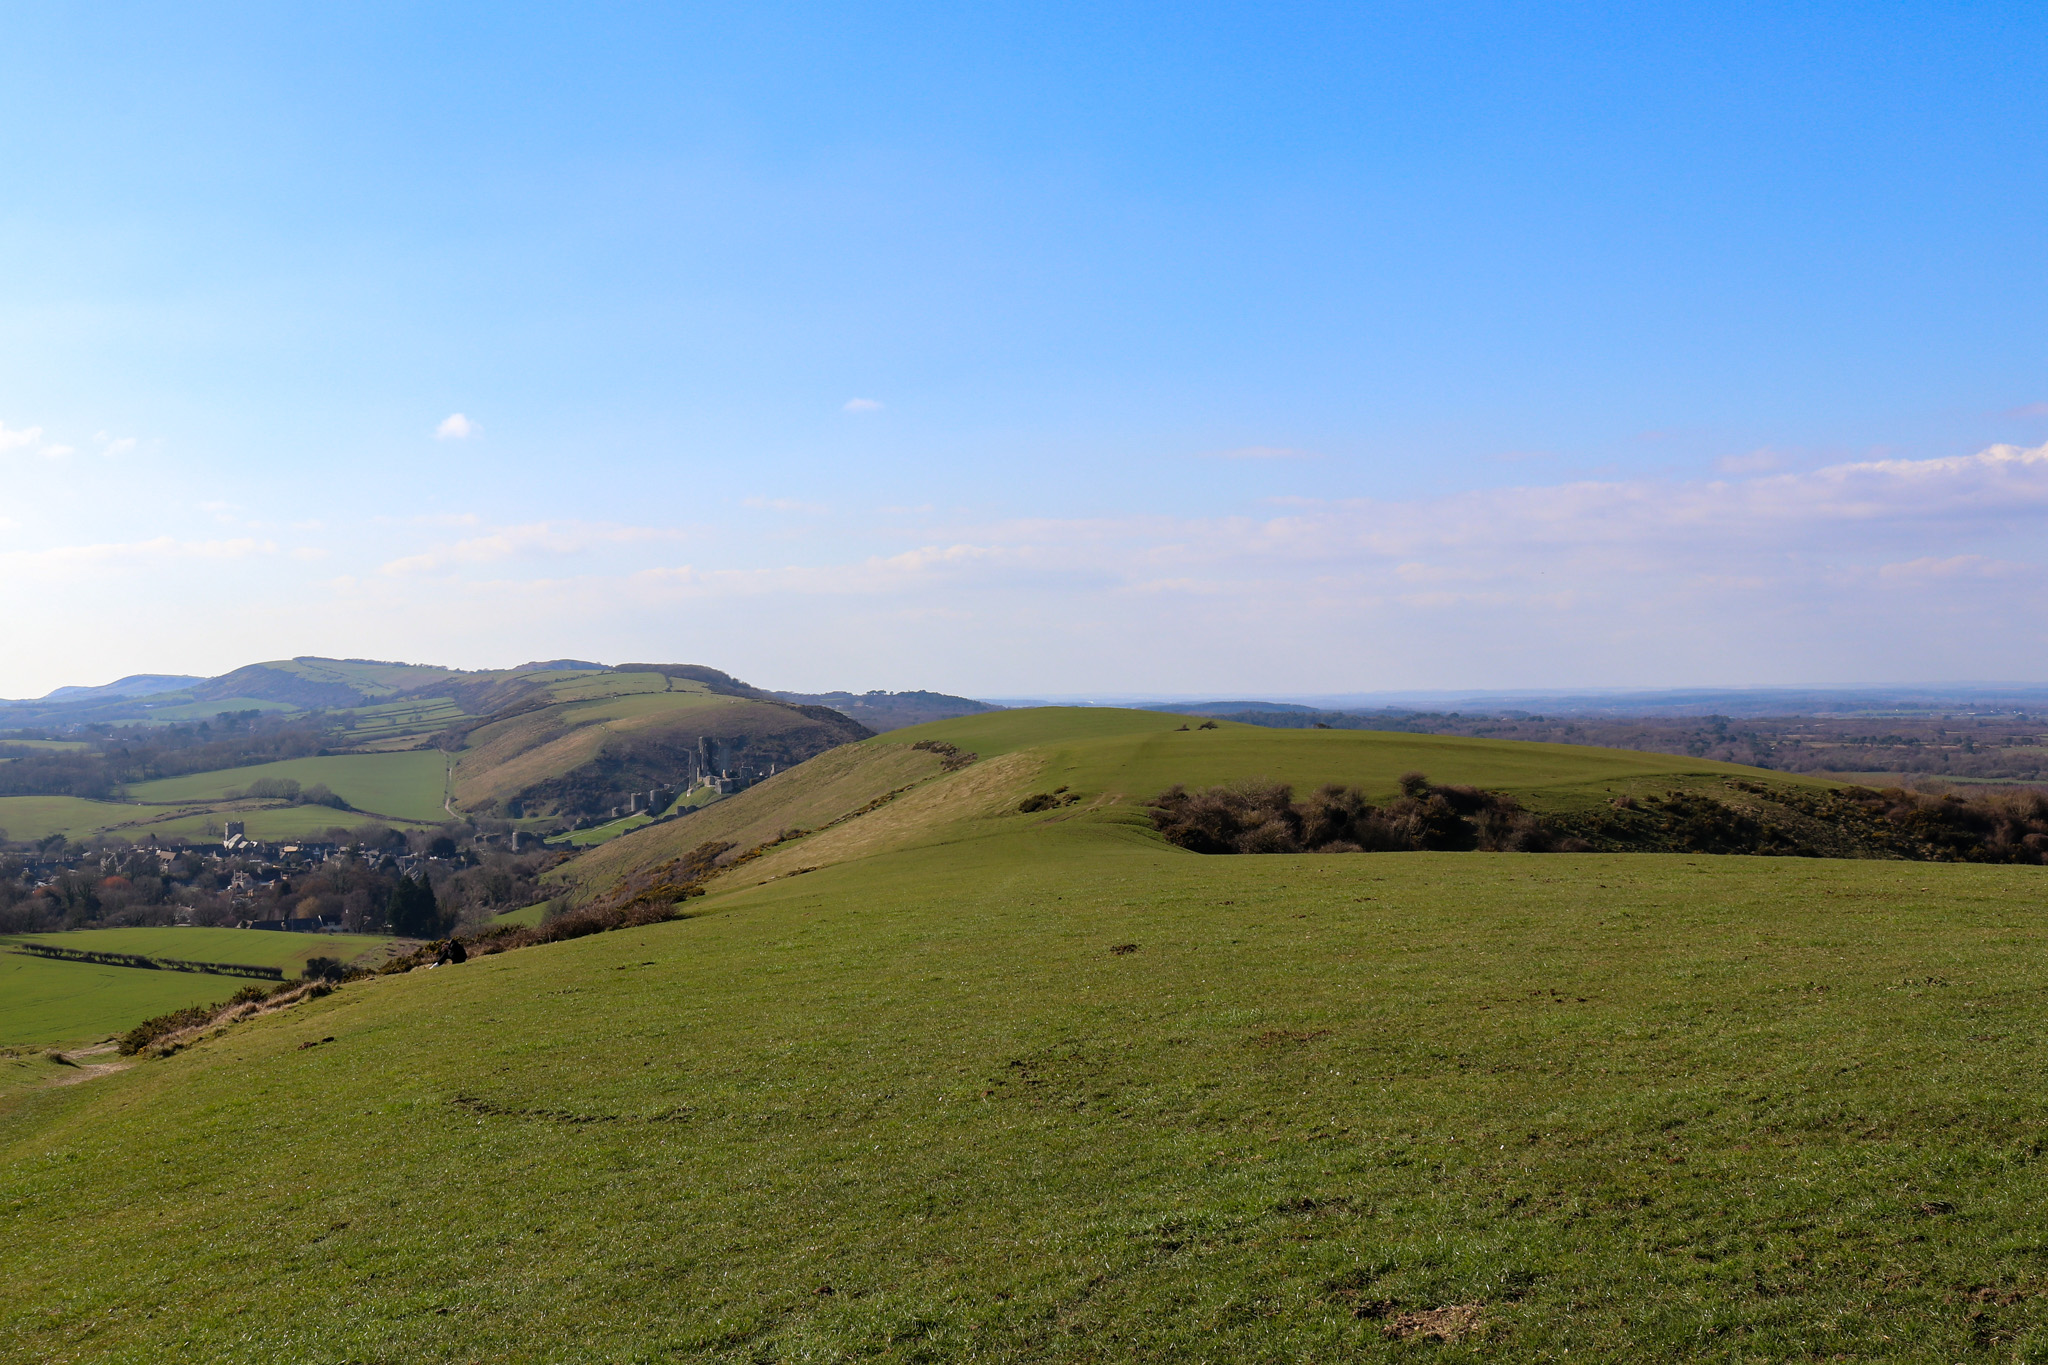 The Purbeck Ridgeway looking toward Corfe Castle and village